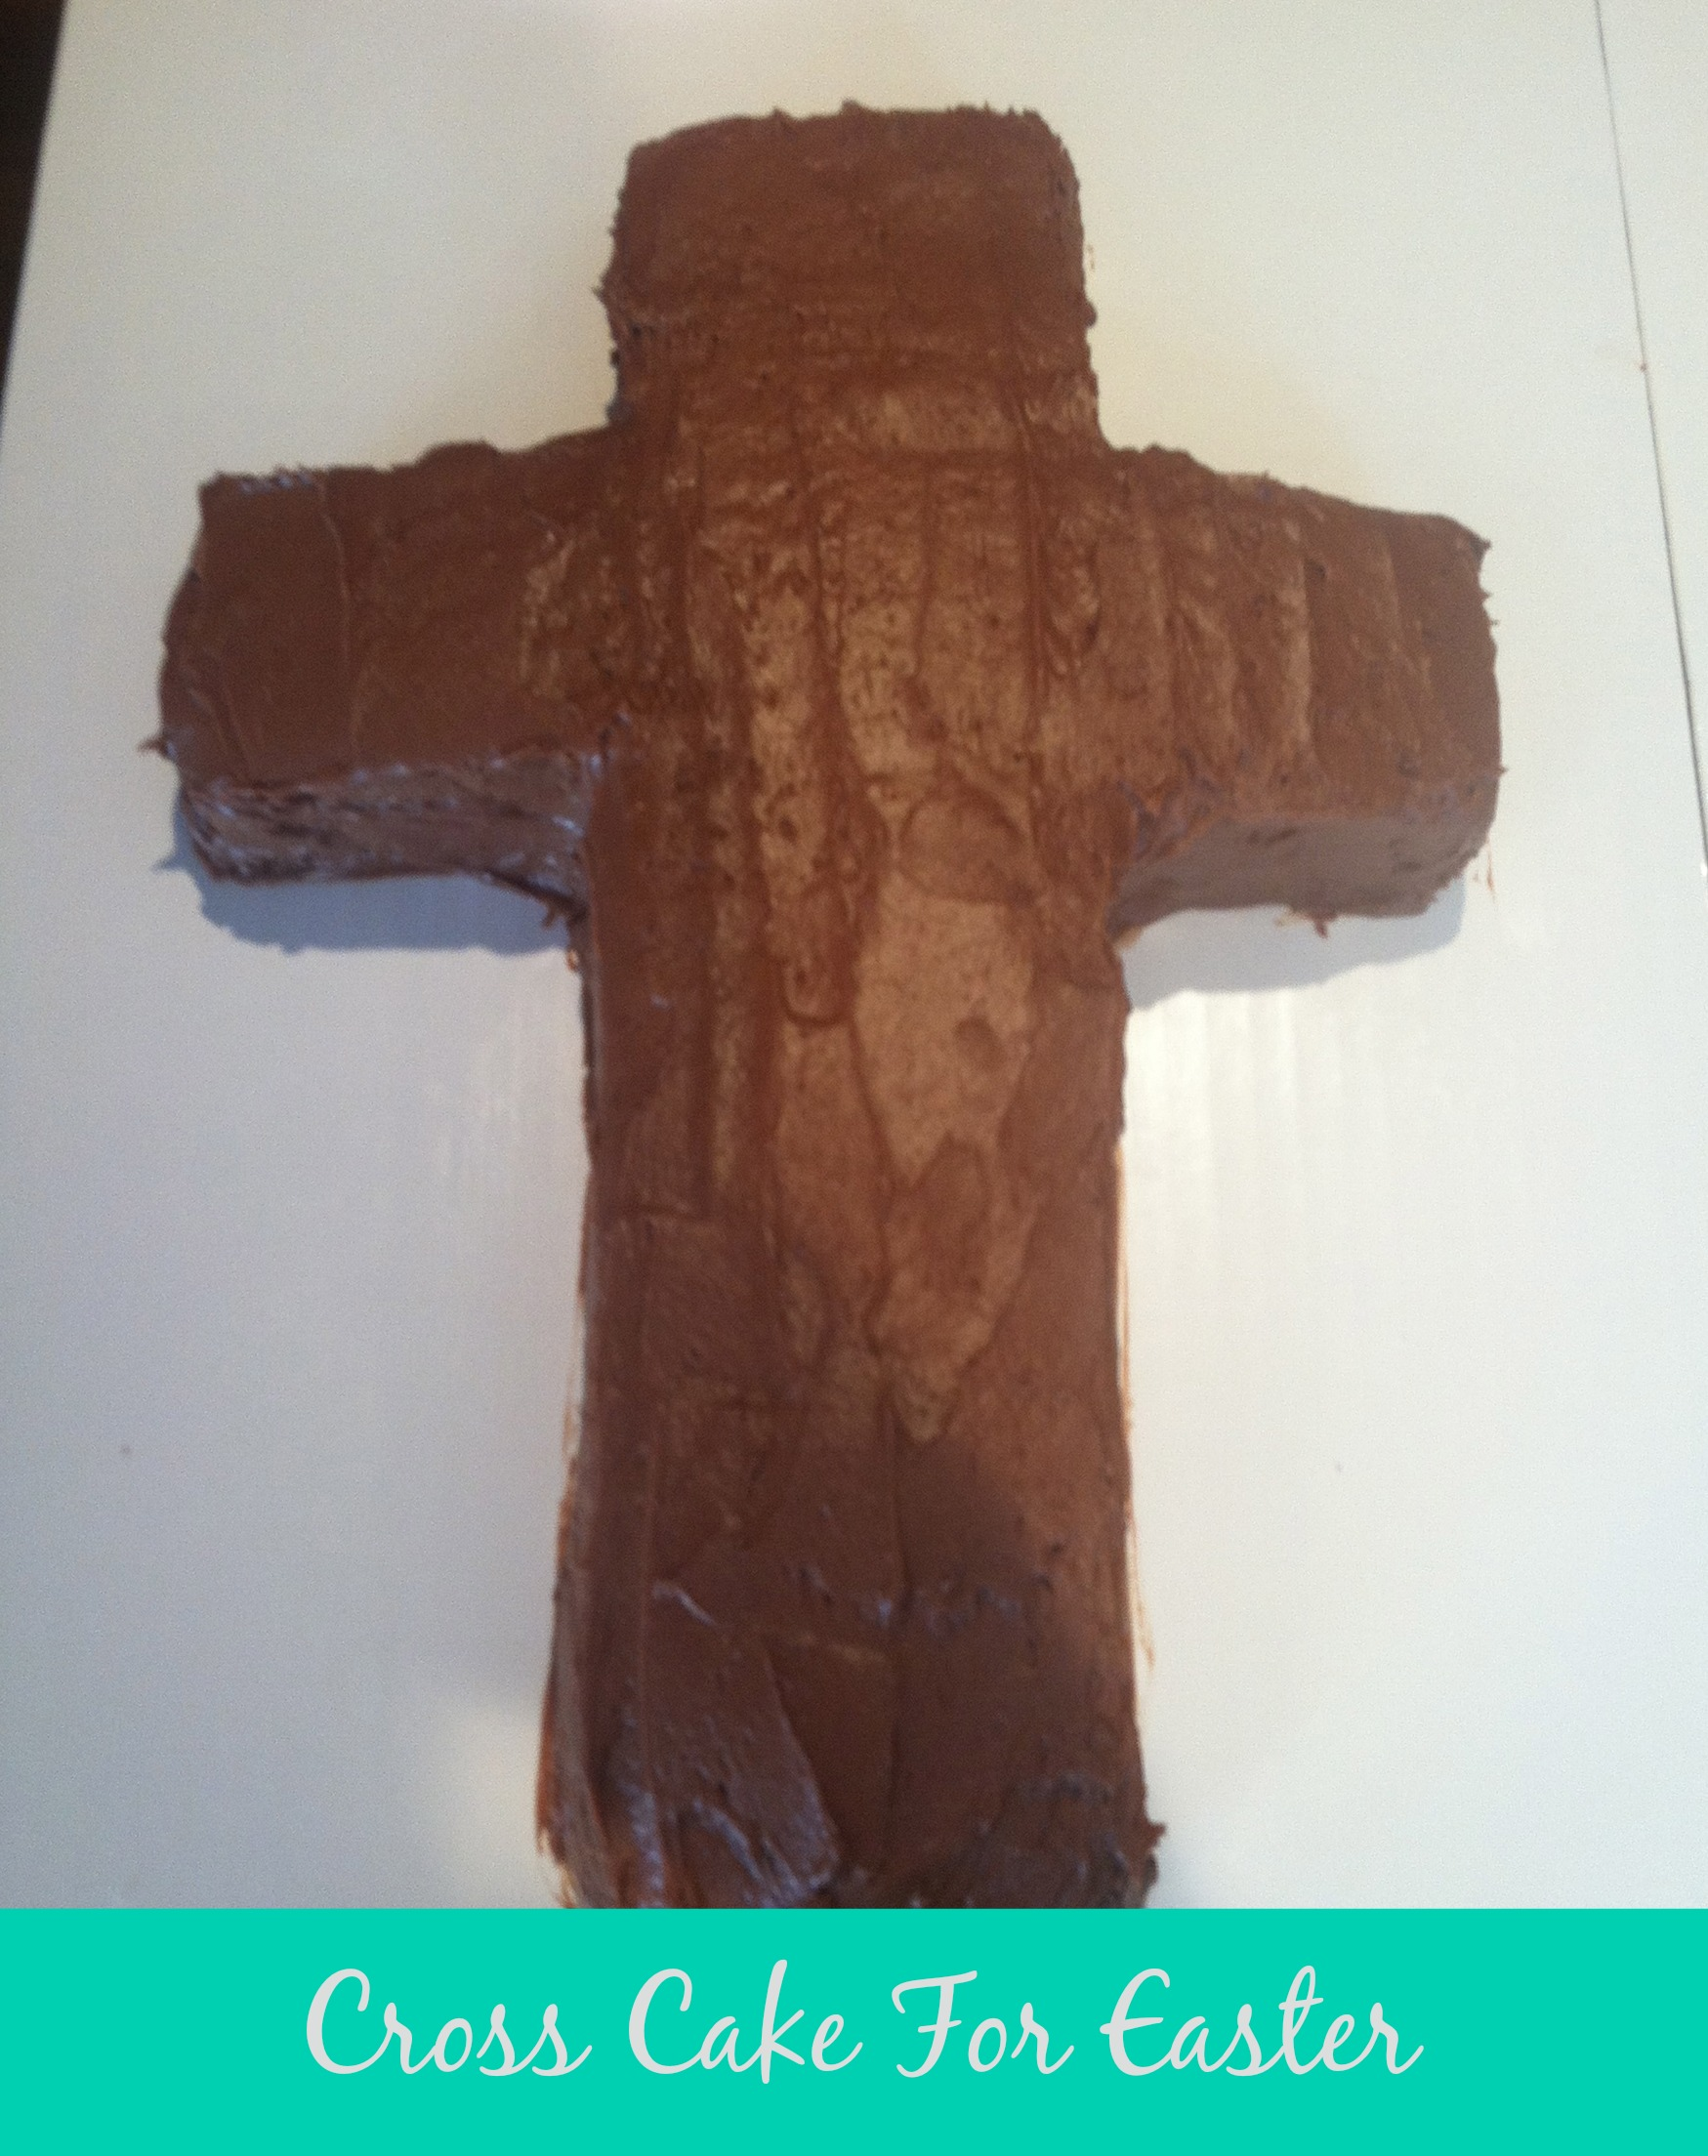 Cross Cake for Easter.jpg